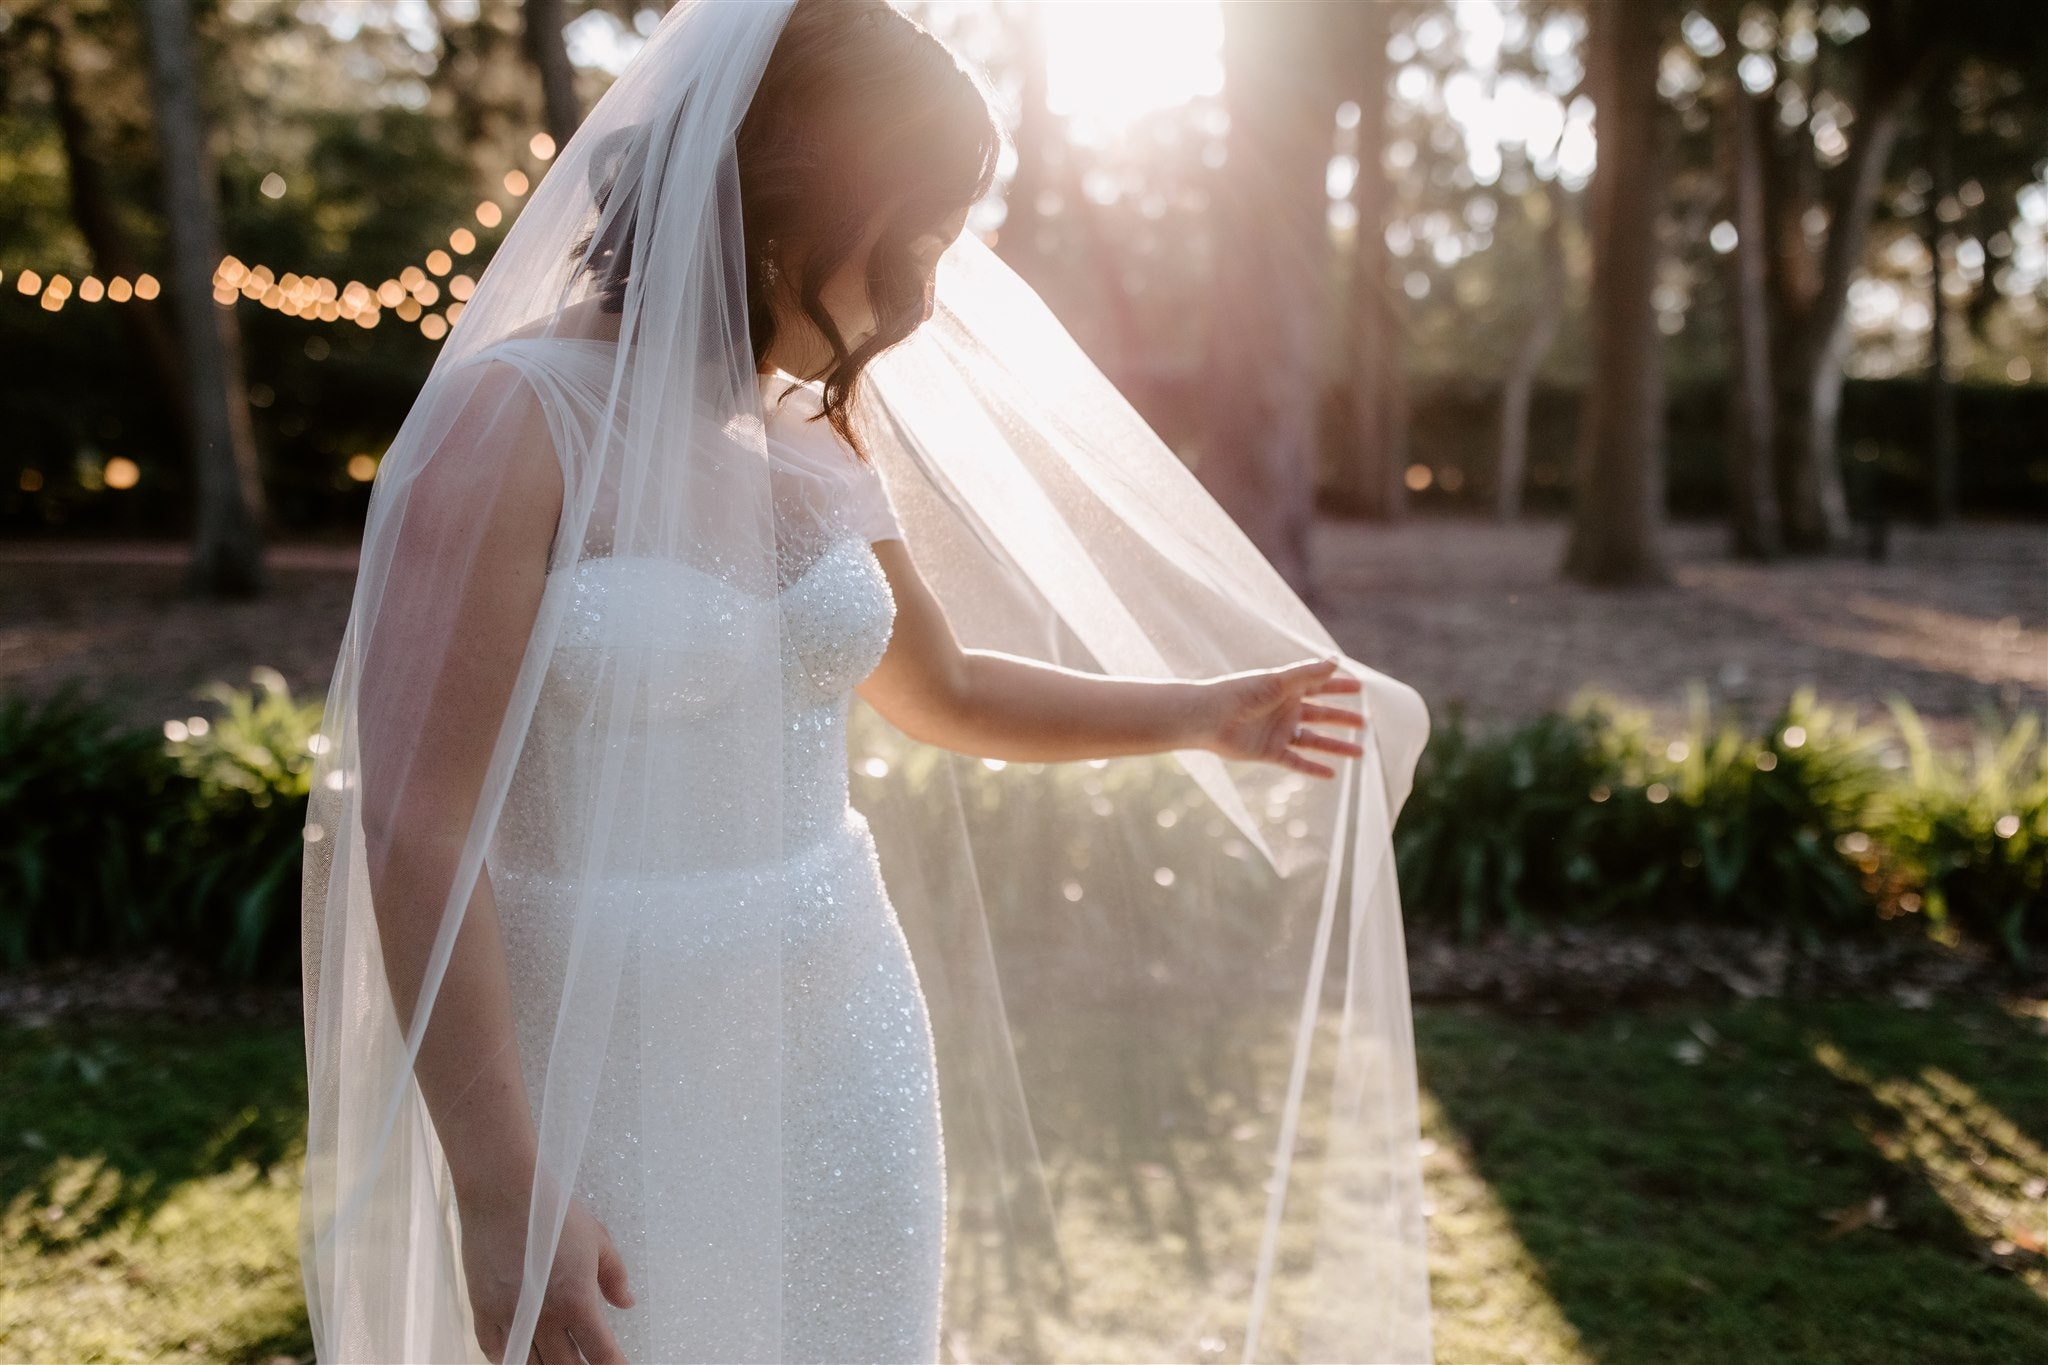 Bride playing with veil and the sun shining through